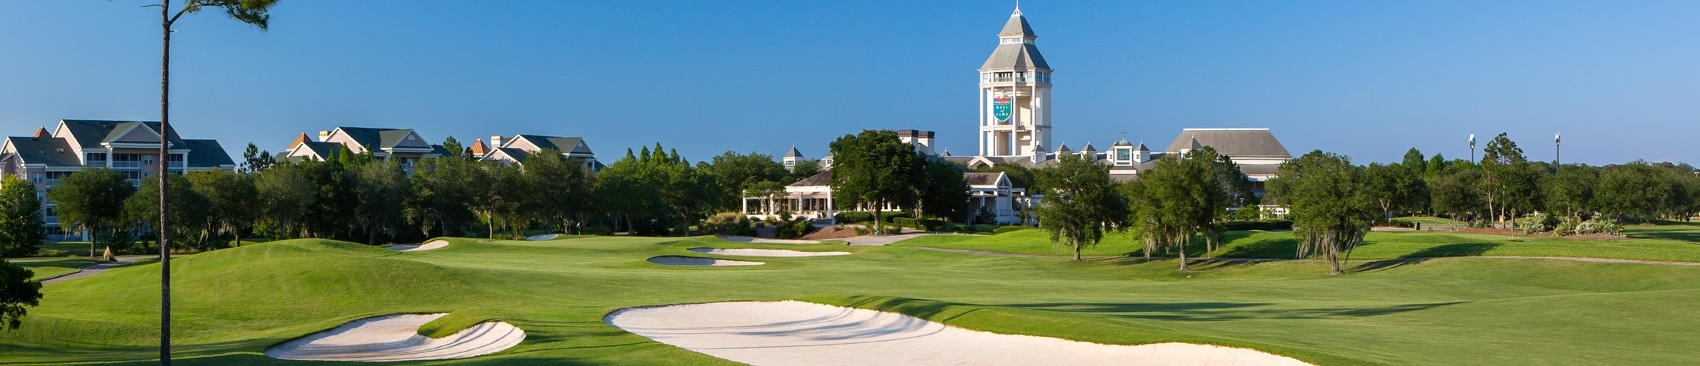 World Golf Village, St Augustine FL